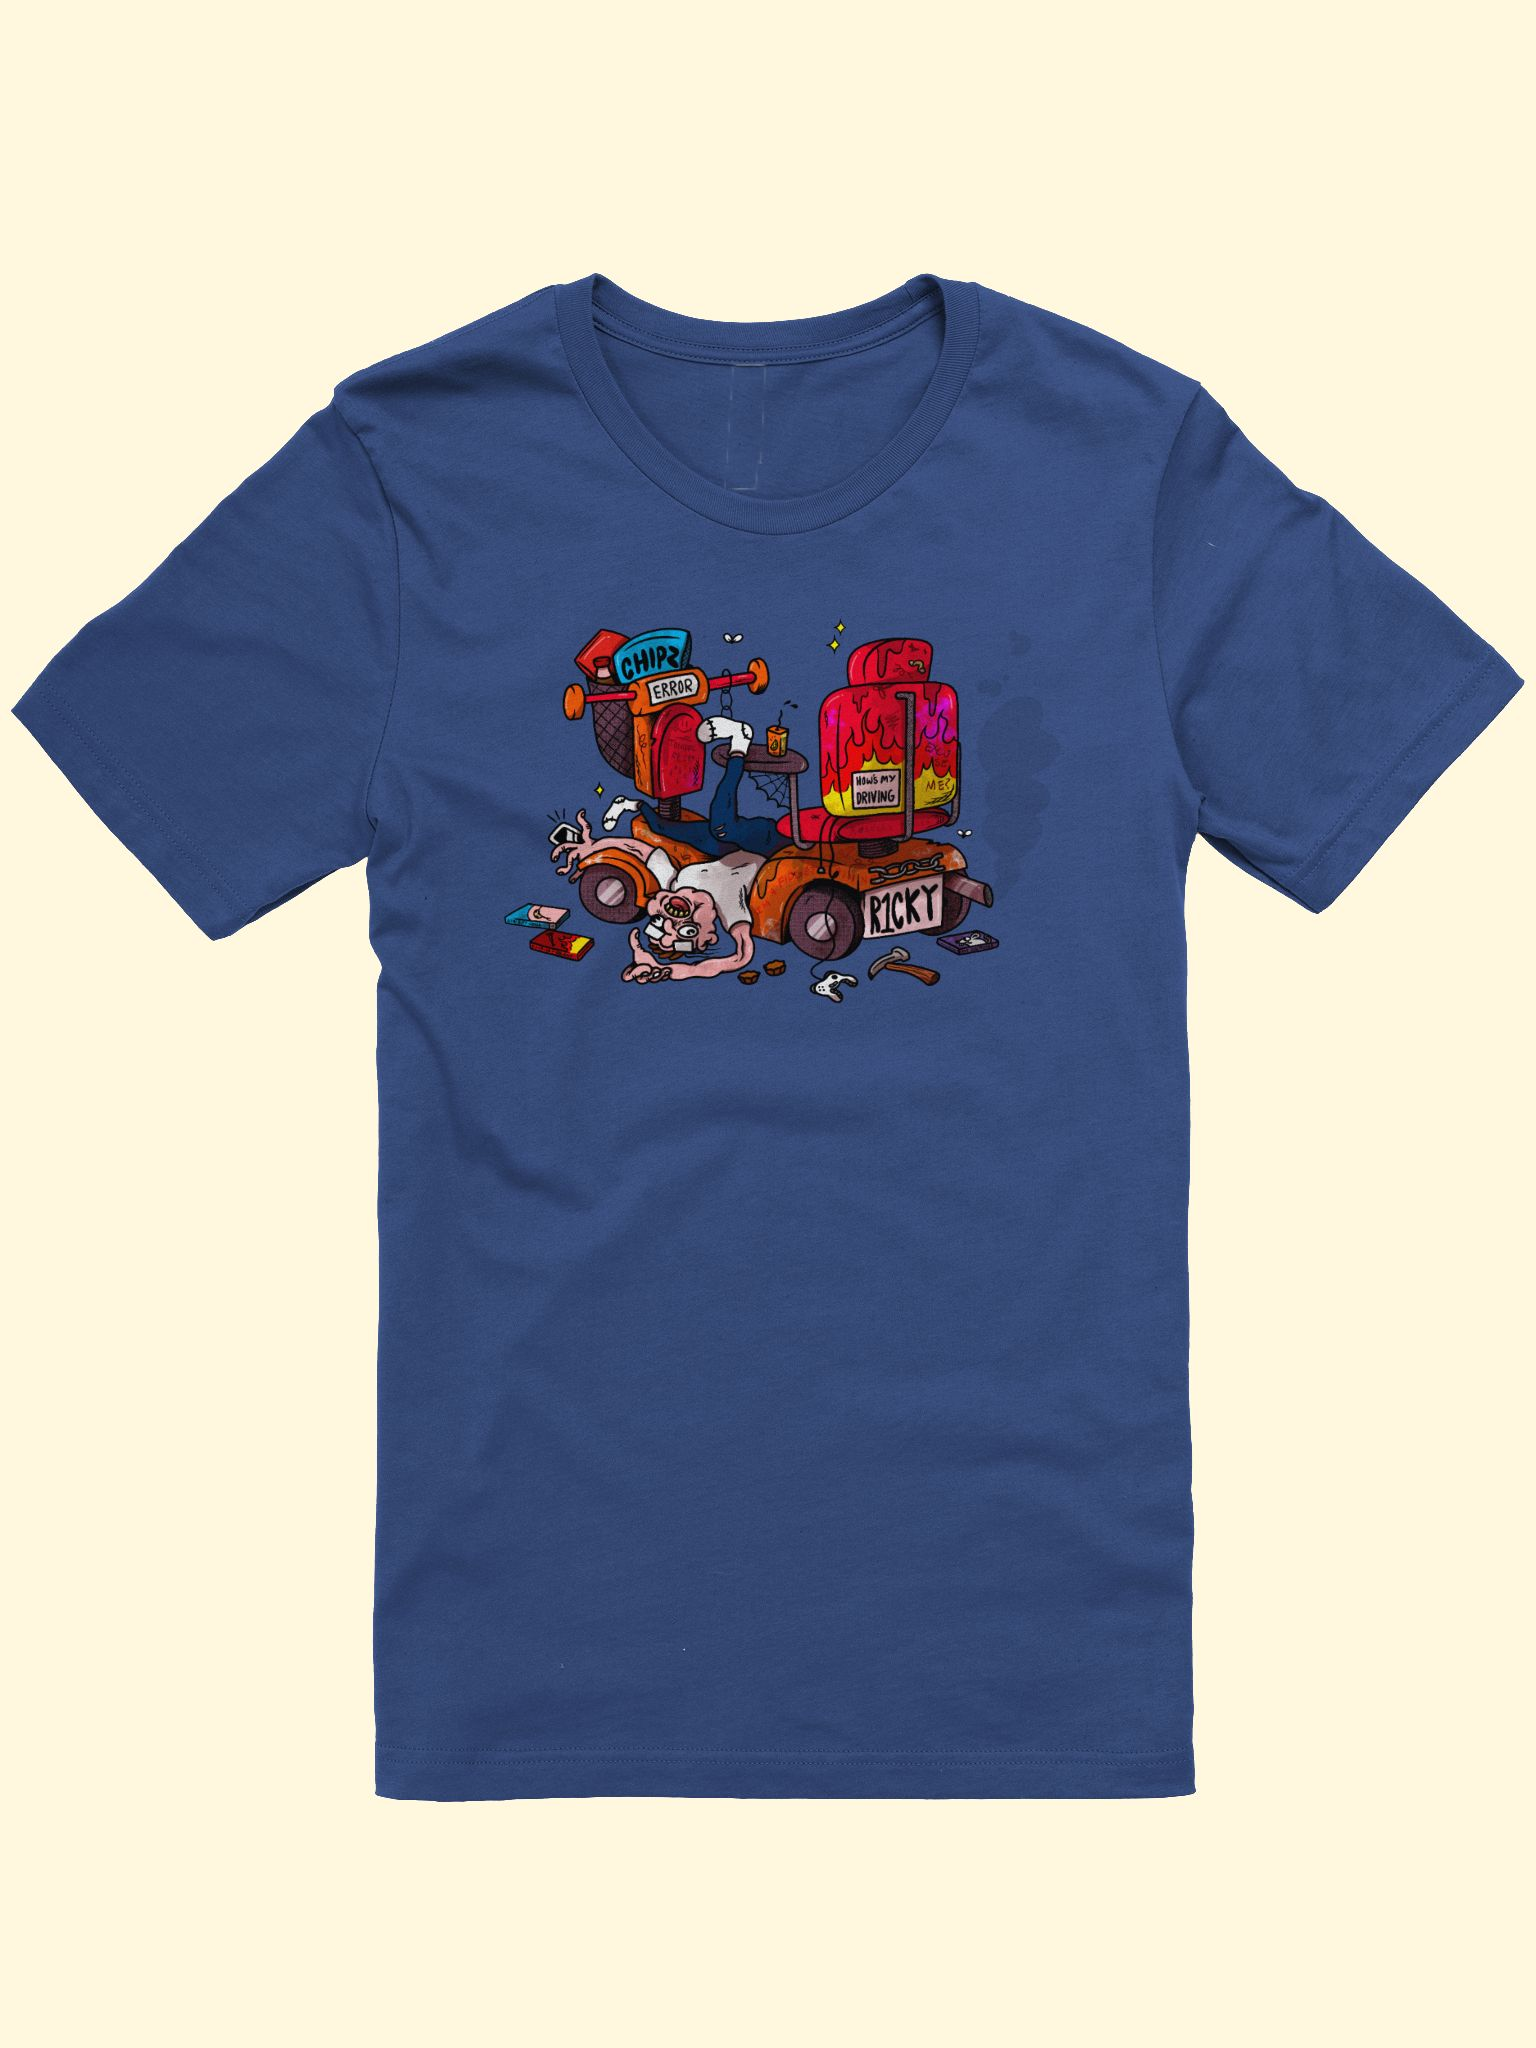 Scooter Legend T-shirt product image (1)